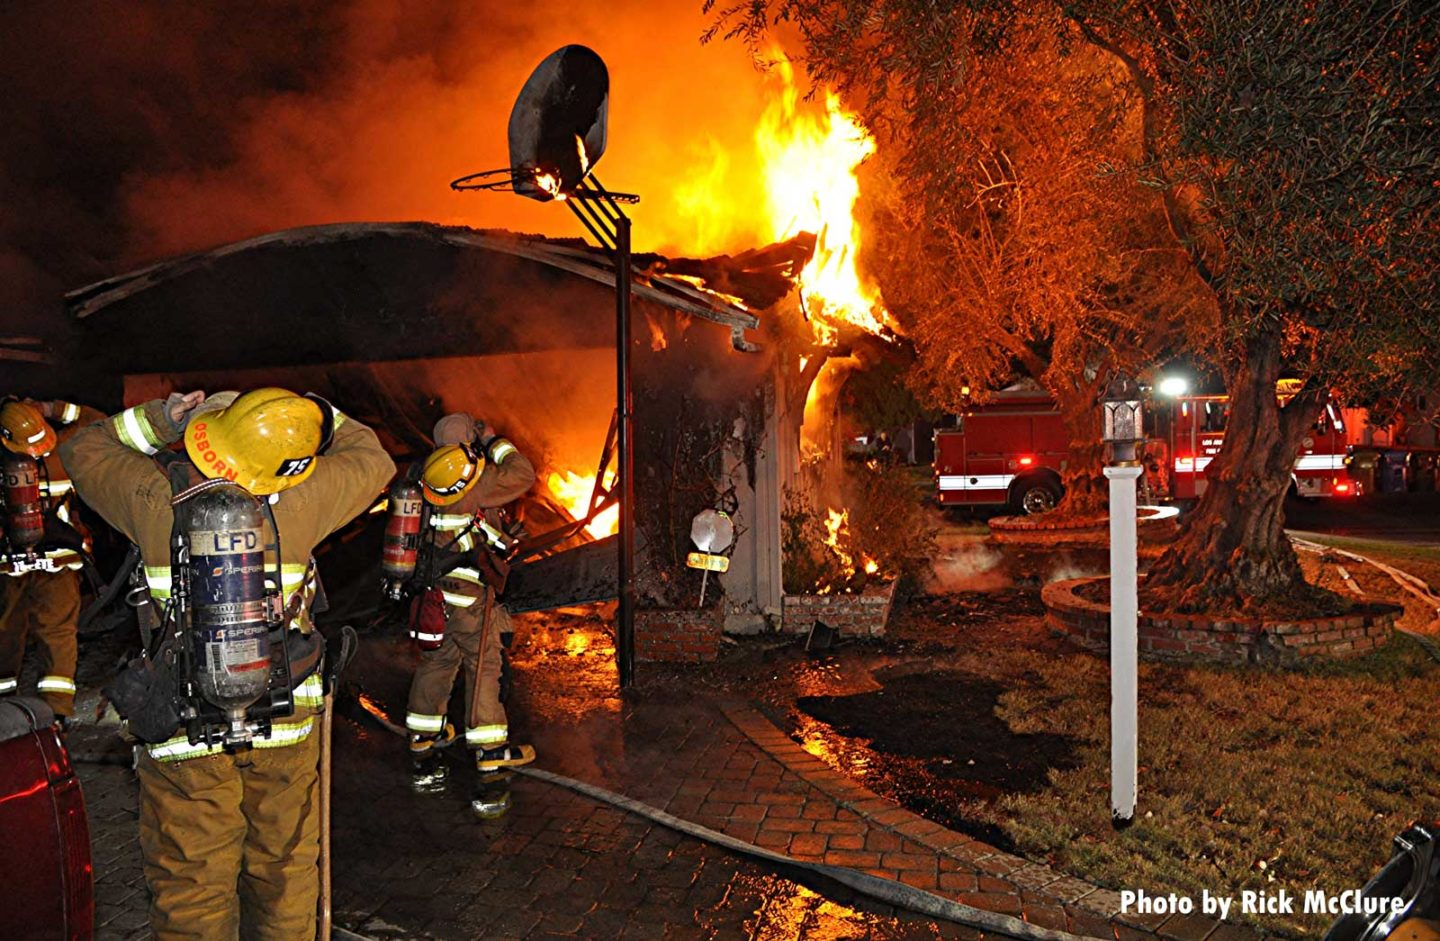 Multiple City of Los Angeles firefighters at structure fire